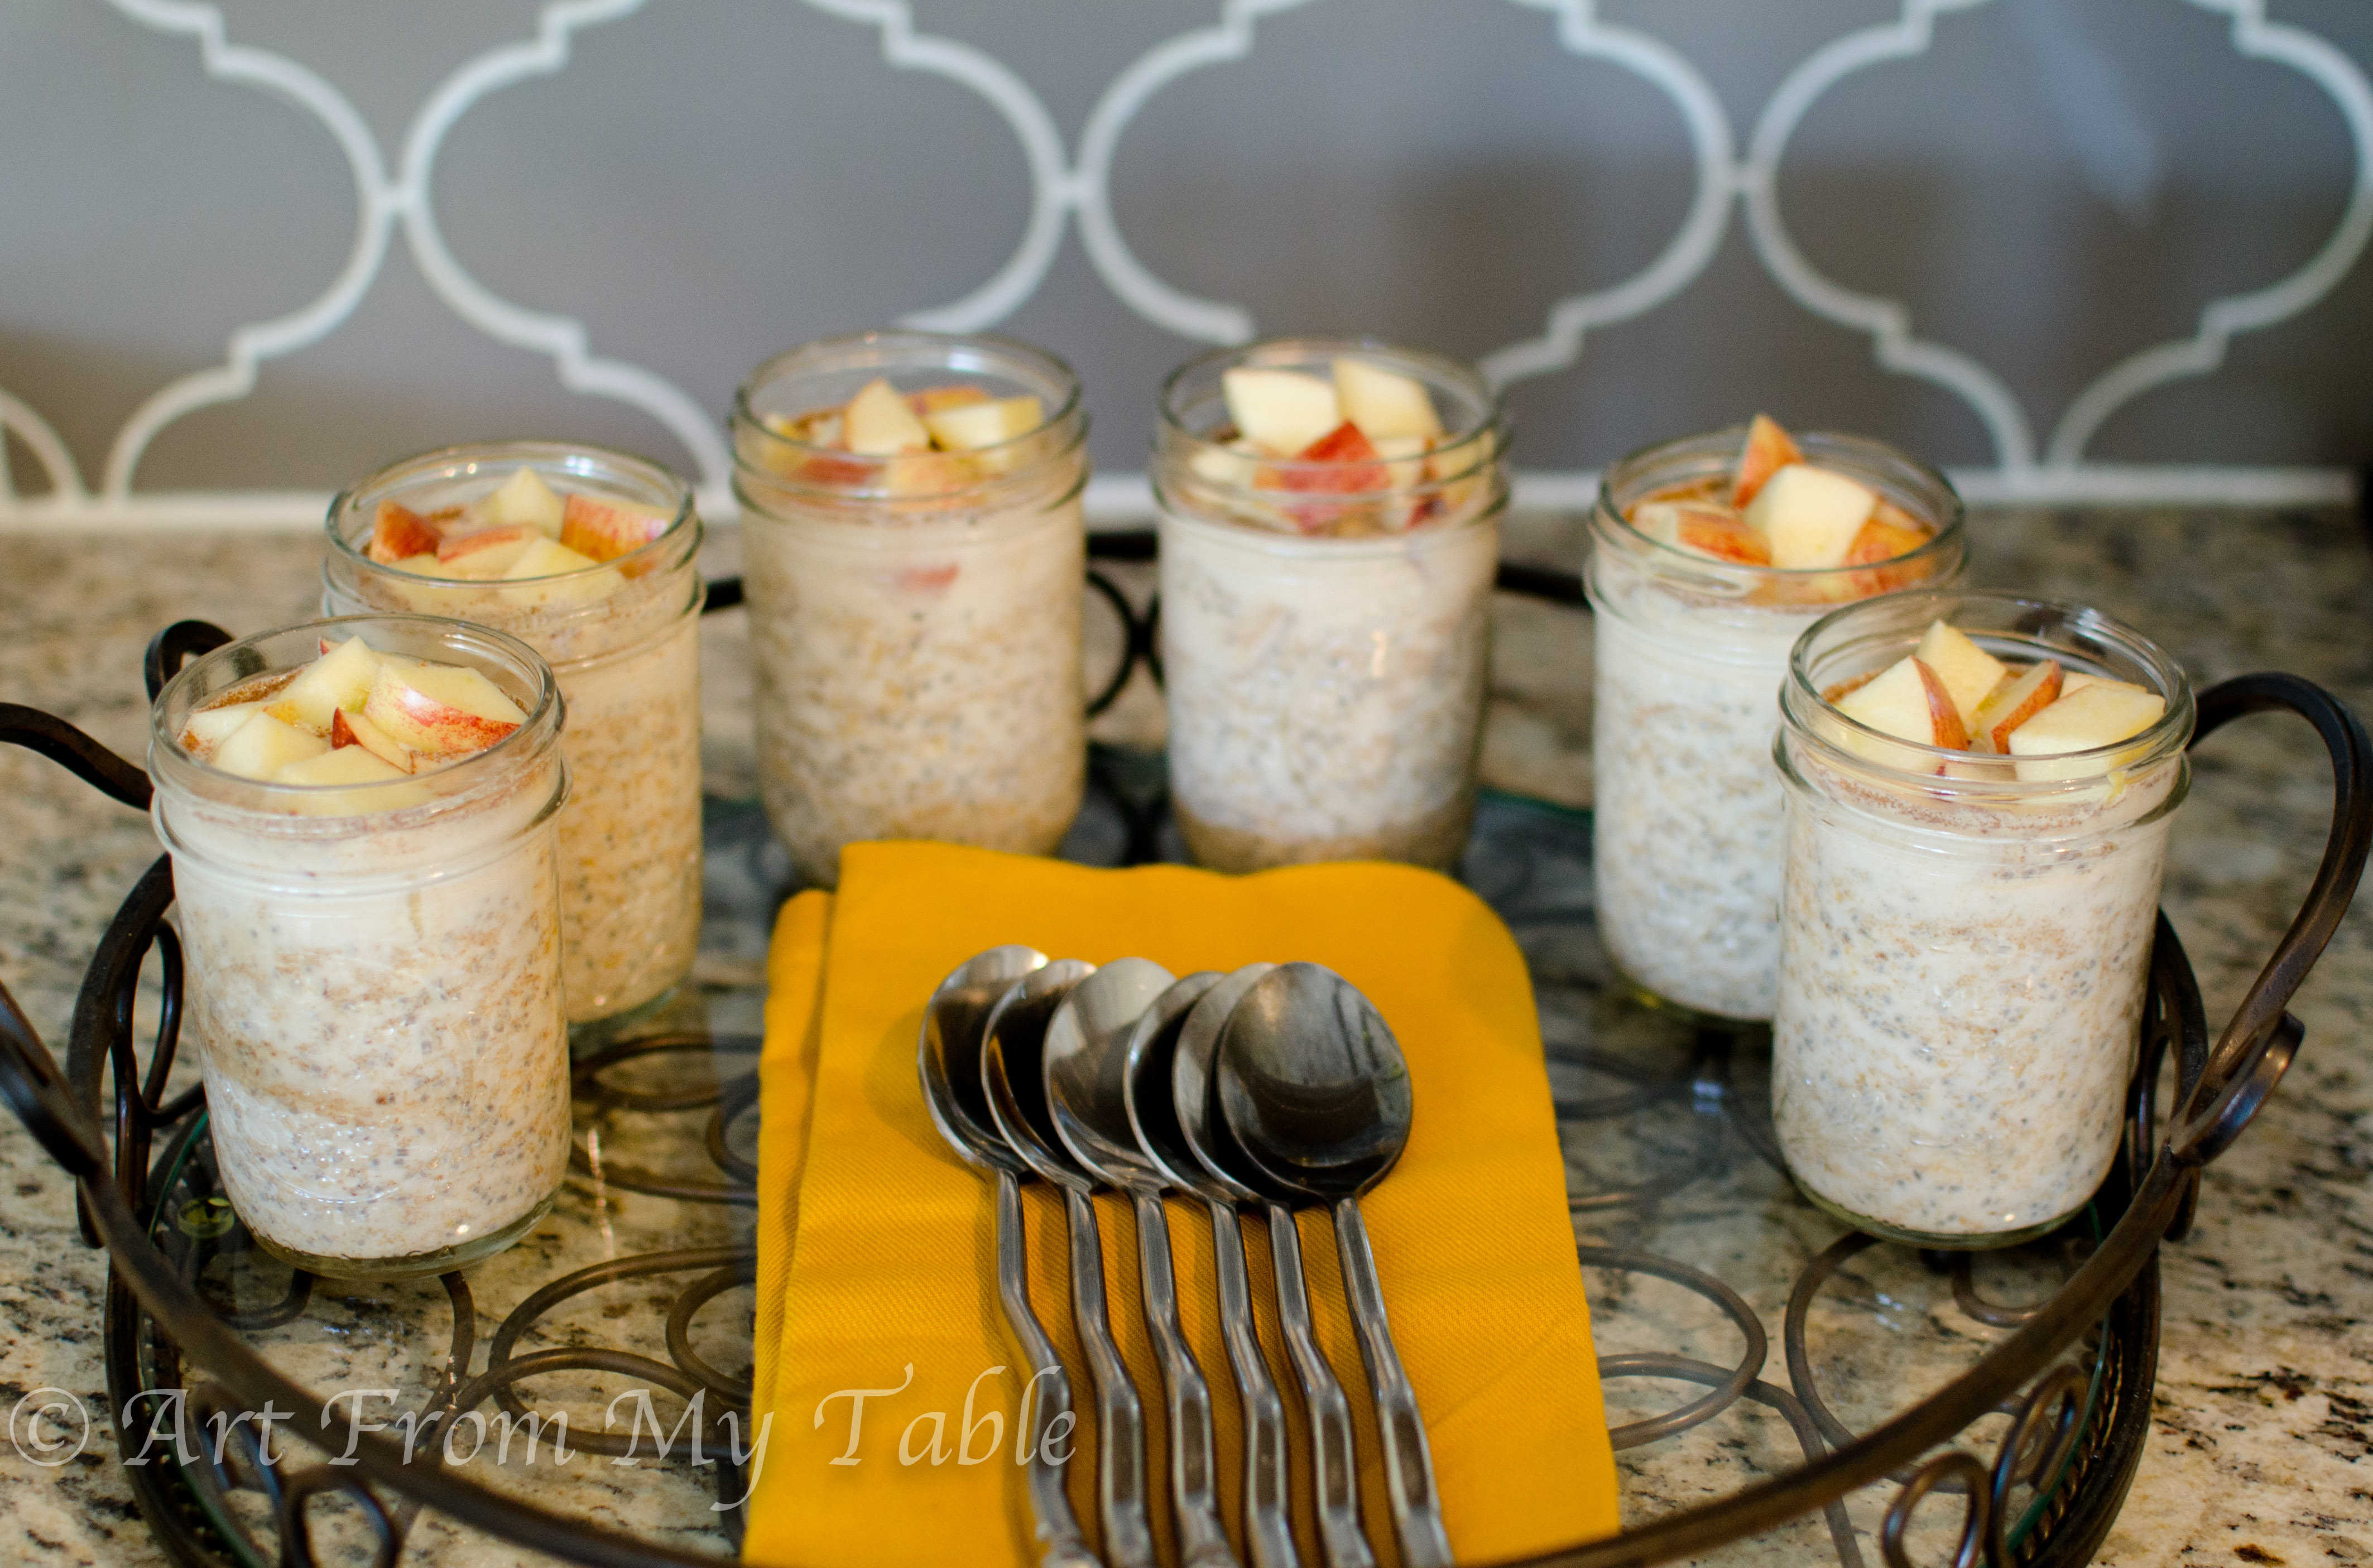 Tray of mason jars filled with Overnight oats.